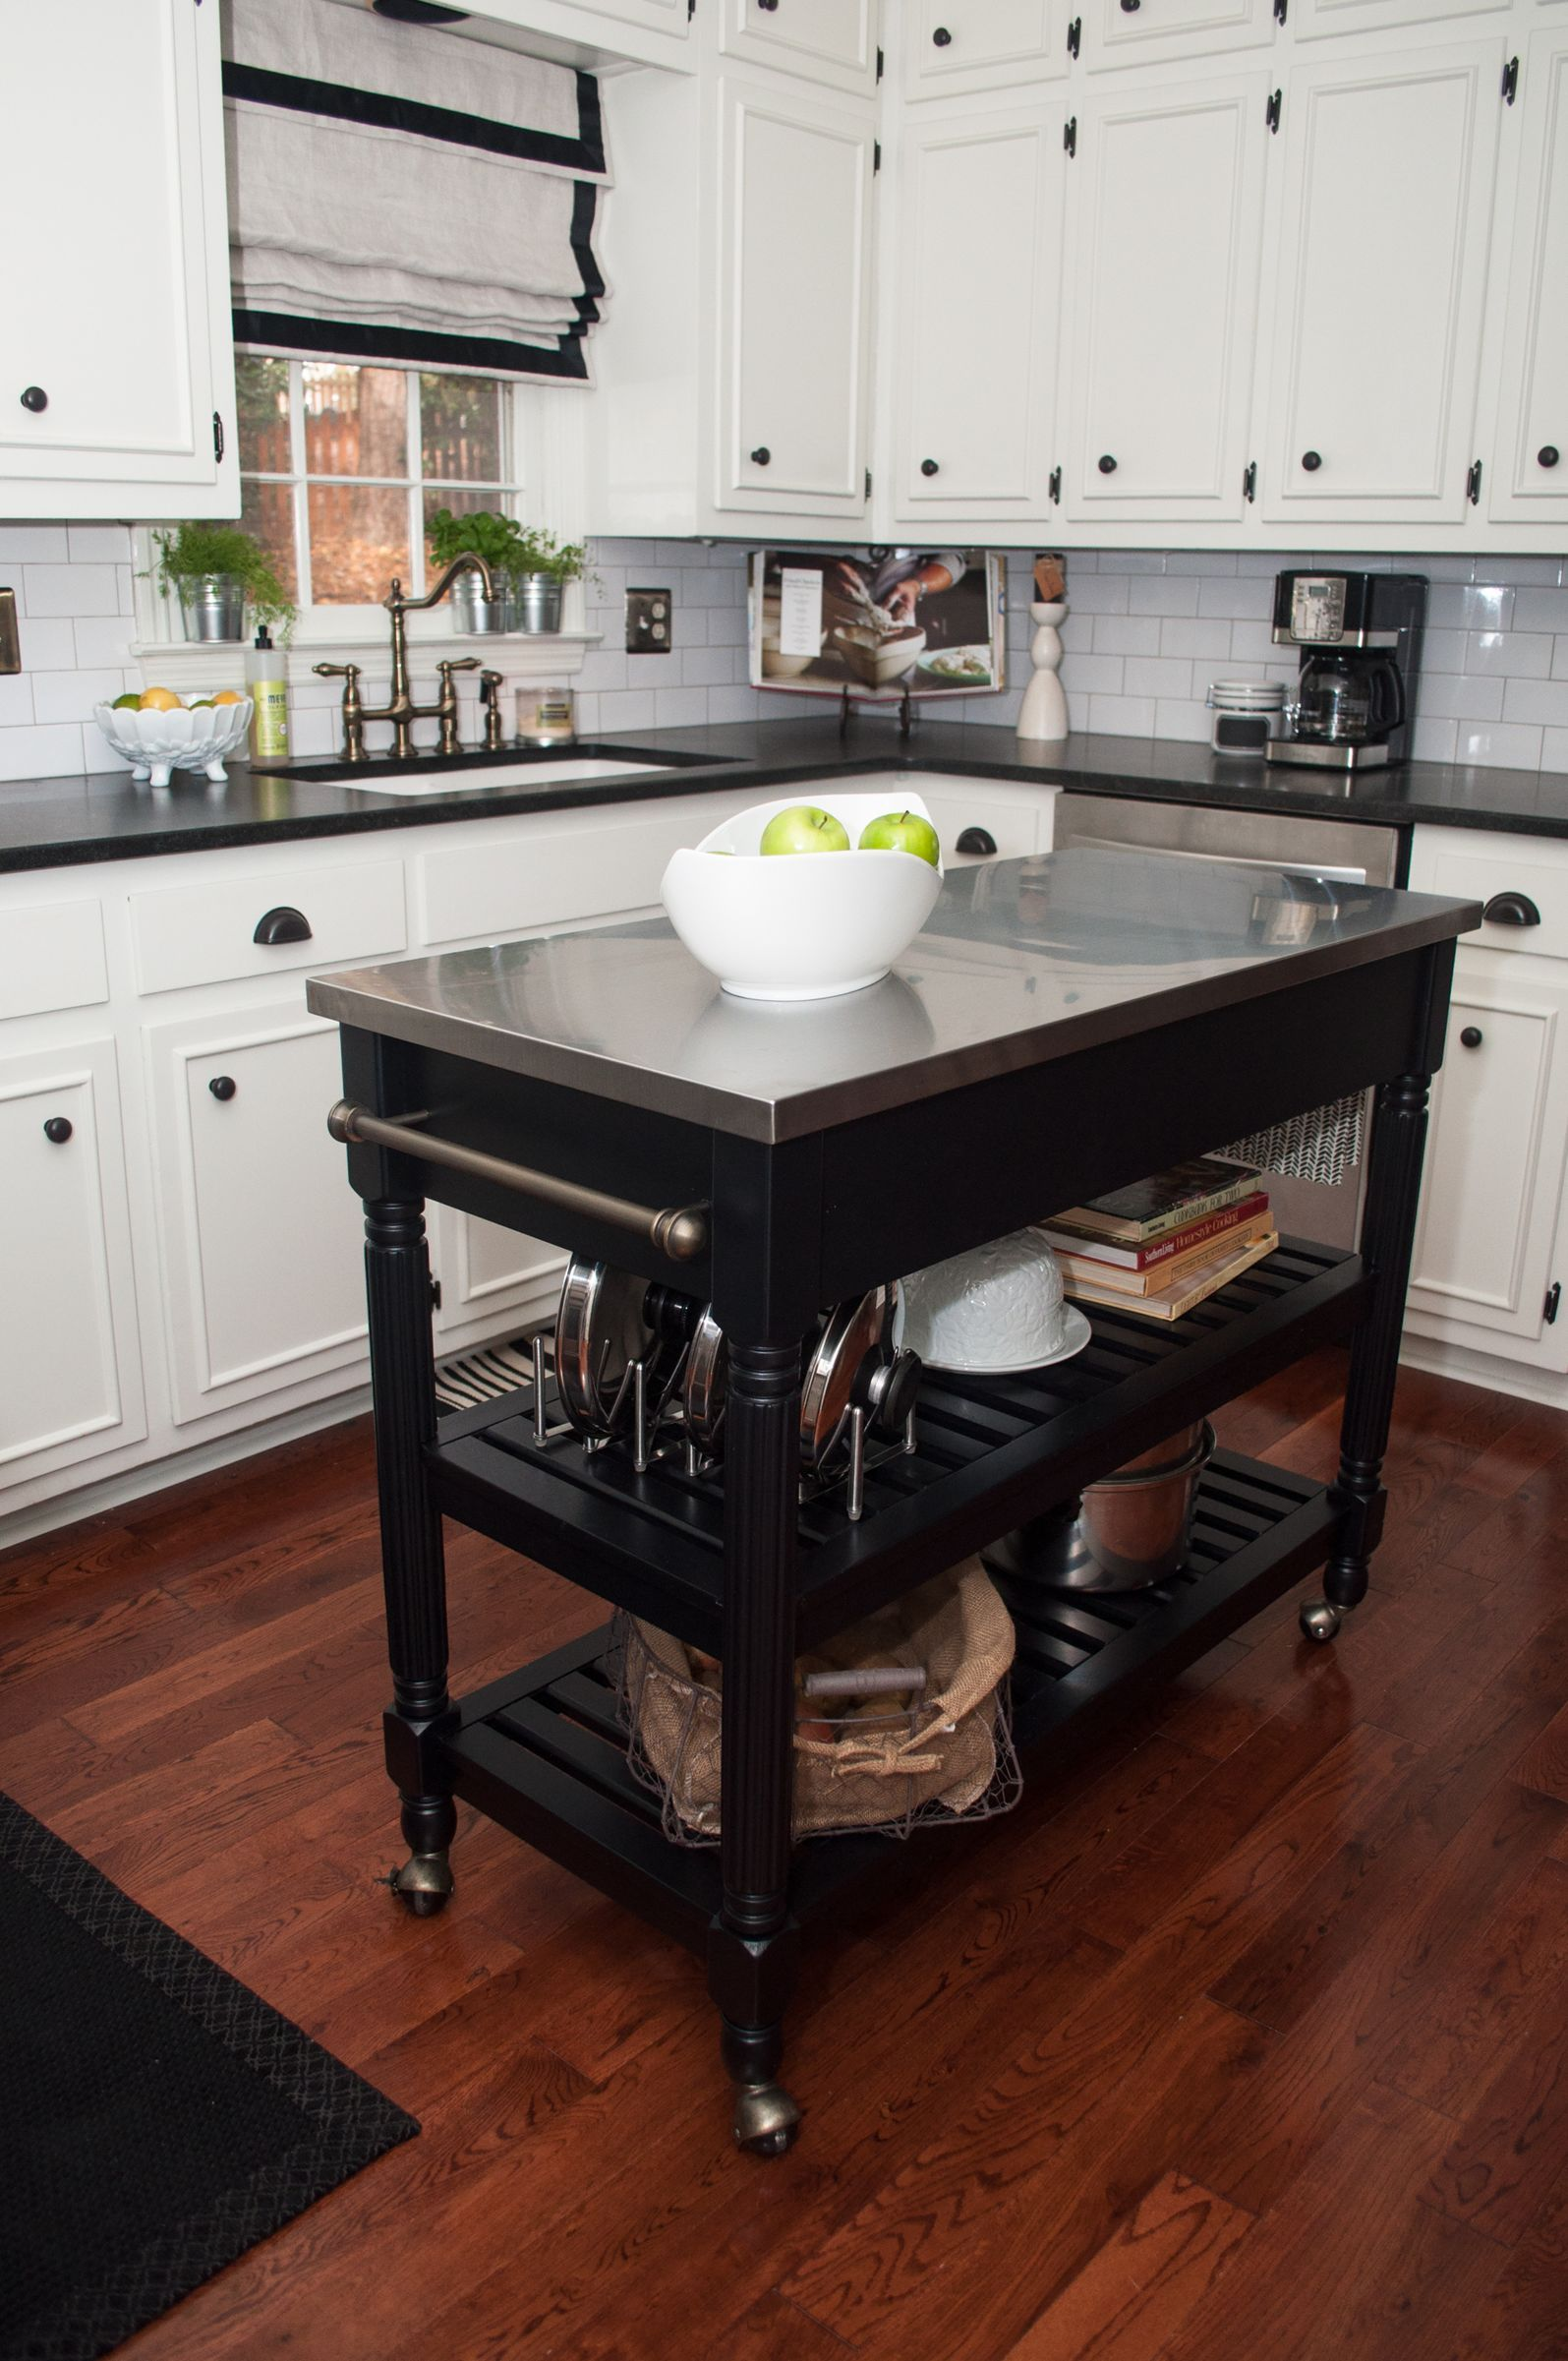 11 Types Of Small Kitchen Islands Carts On Wheels 2020 Kitchen Remodel Small Kitchen Design Small Portable Kitchen Island